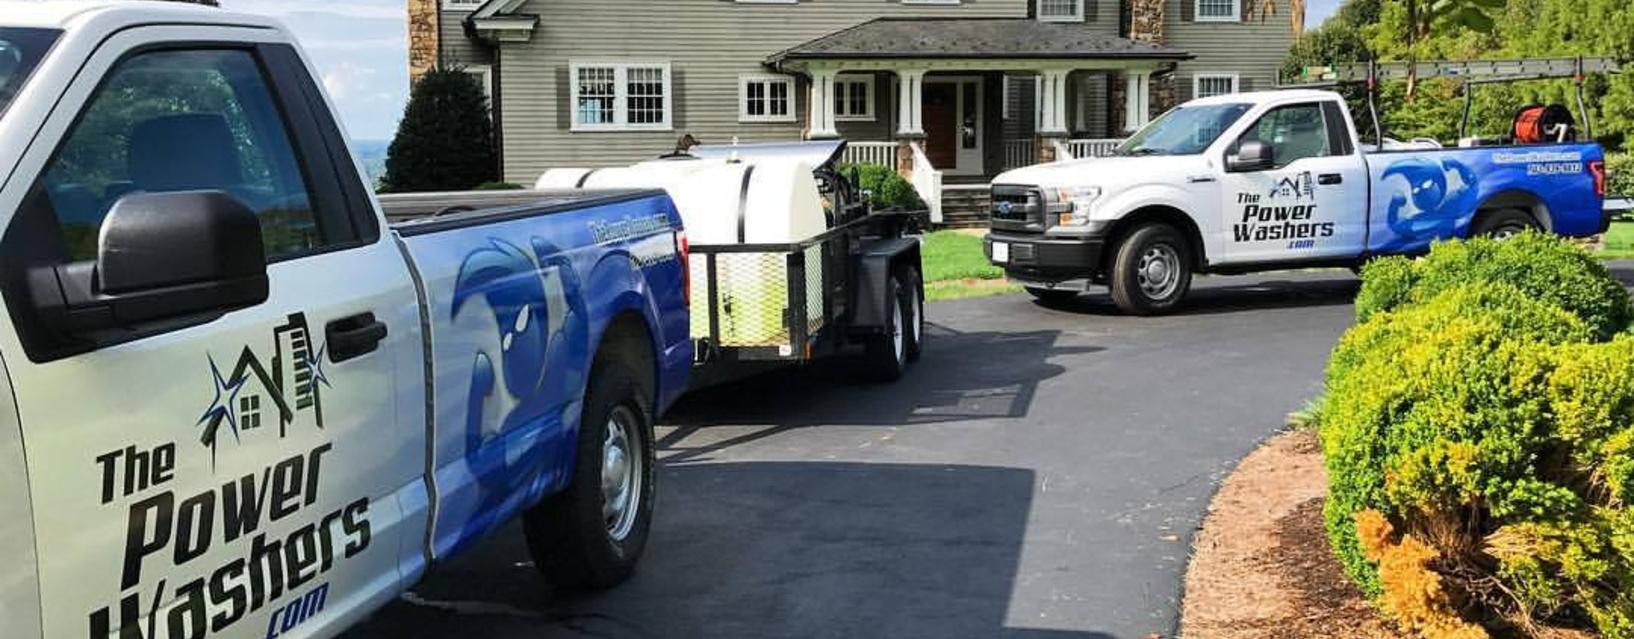 Soft Washing Power Washing And Exterior Cleaning Services